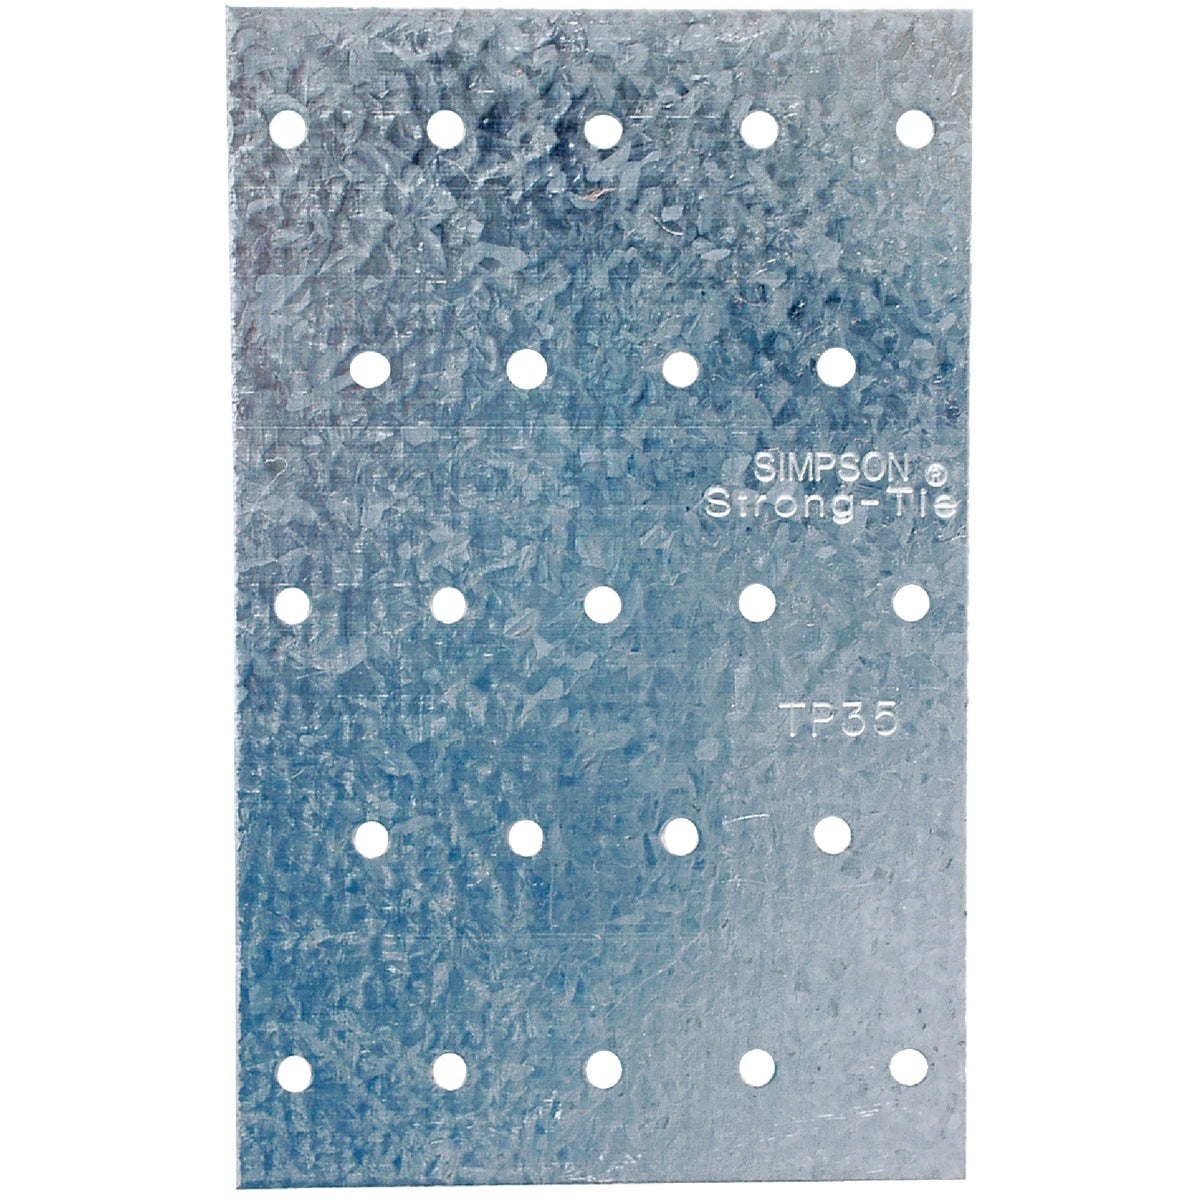 3-1/8X5 TIE PLATE - TP35 by Simpson Strong Tie